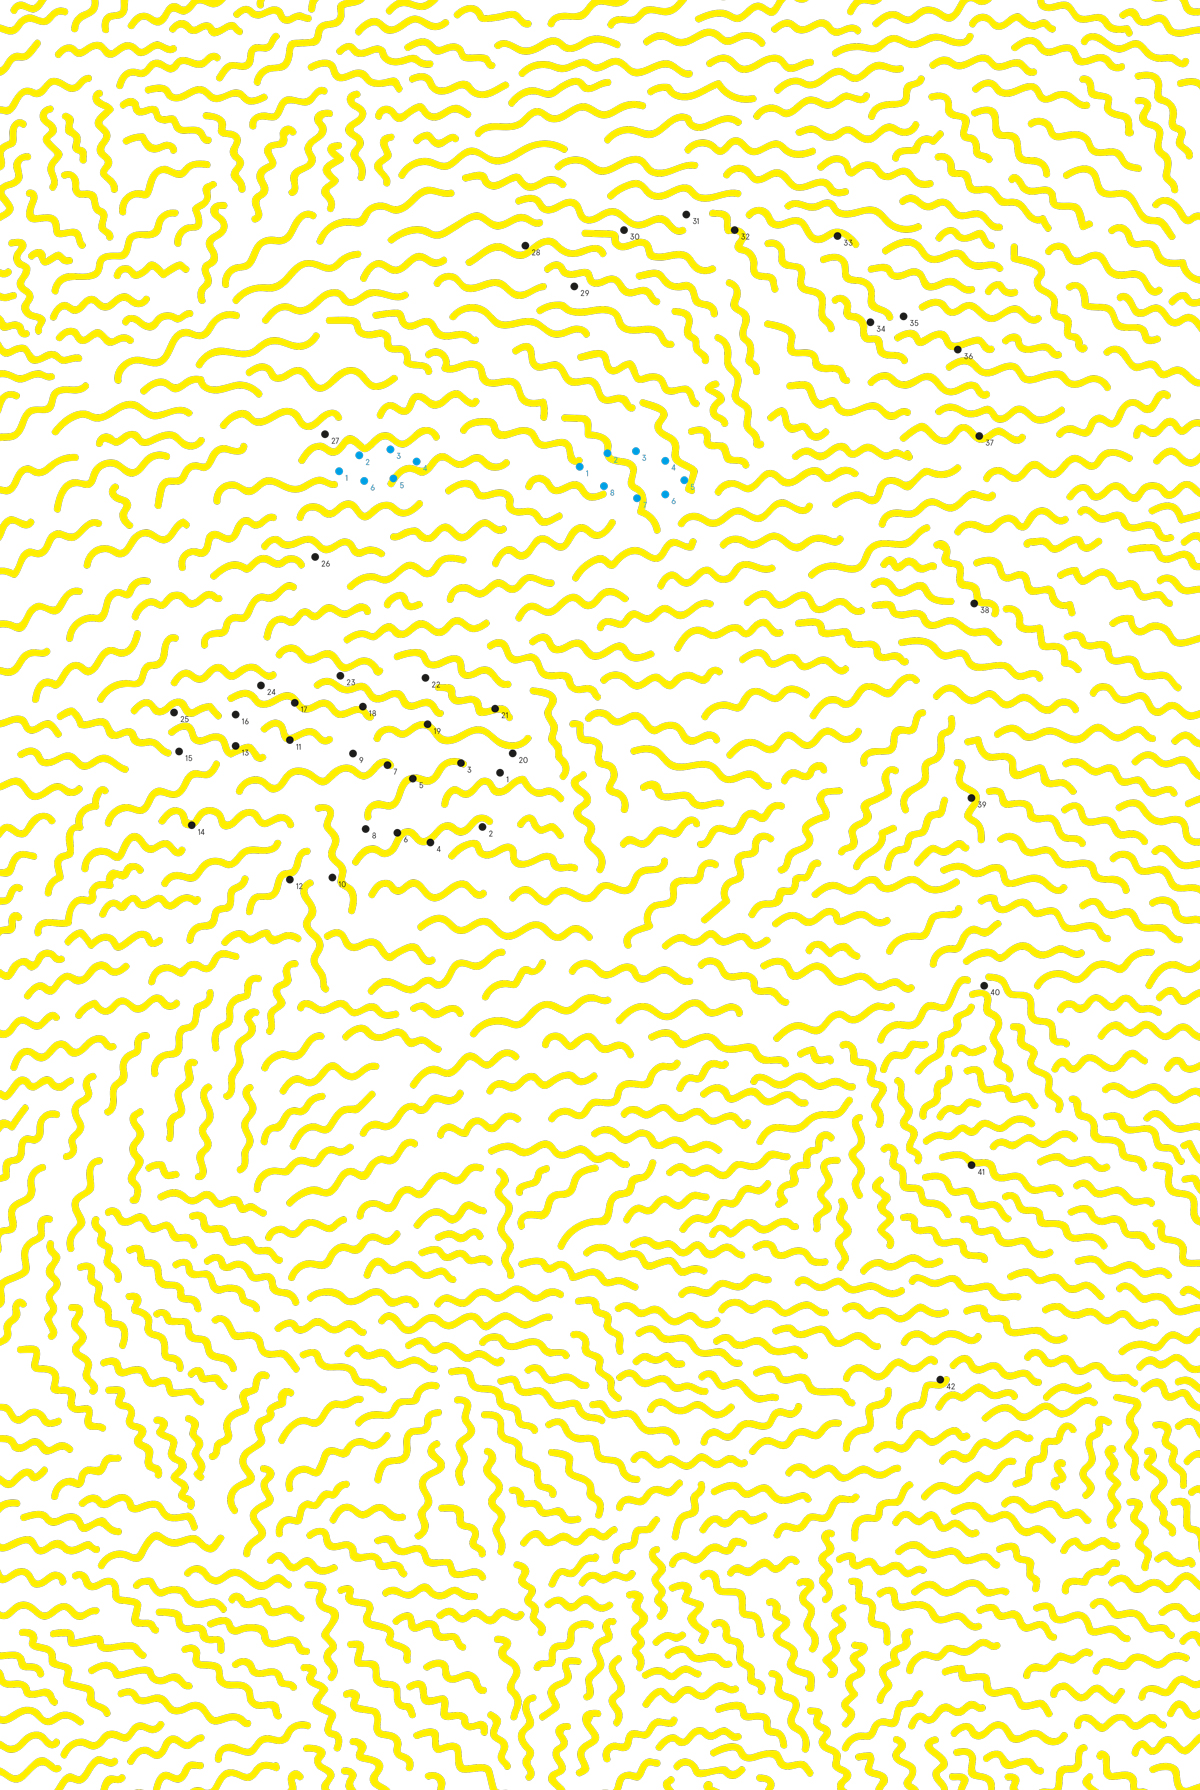 illustration, illustrations, illustrator, illustrators, pattern, squiggle, squiggles, organic, yellow, dots, stipple, stippling